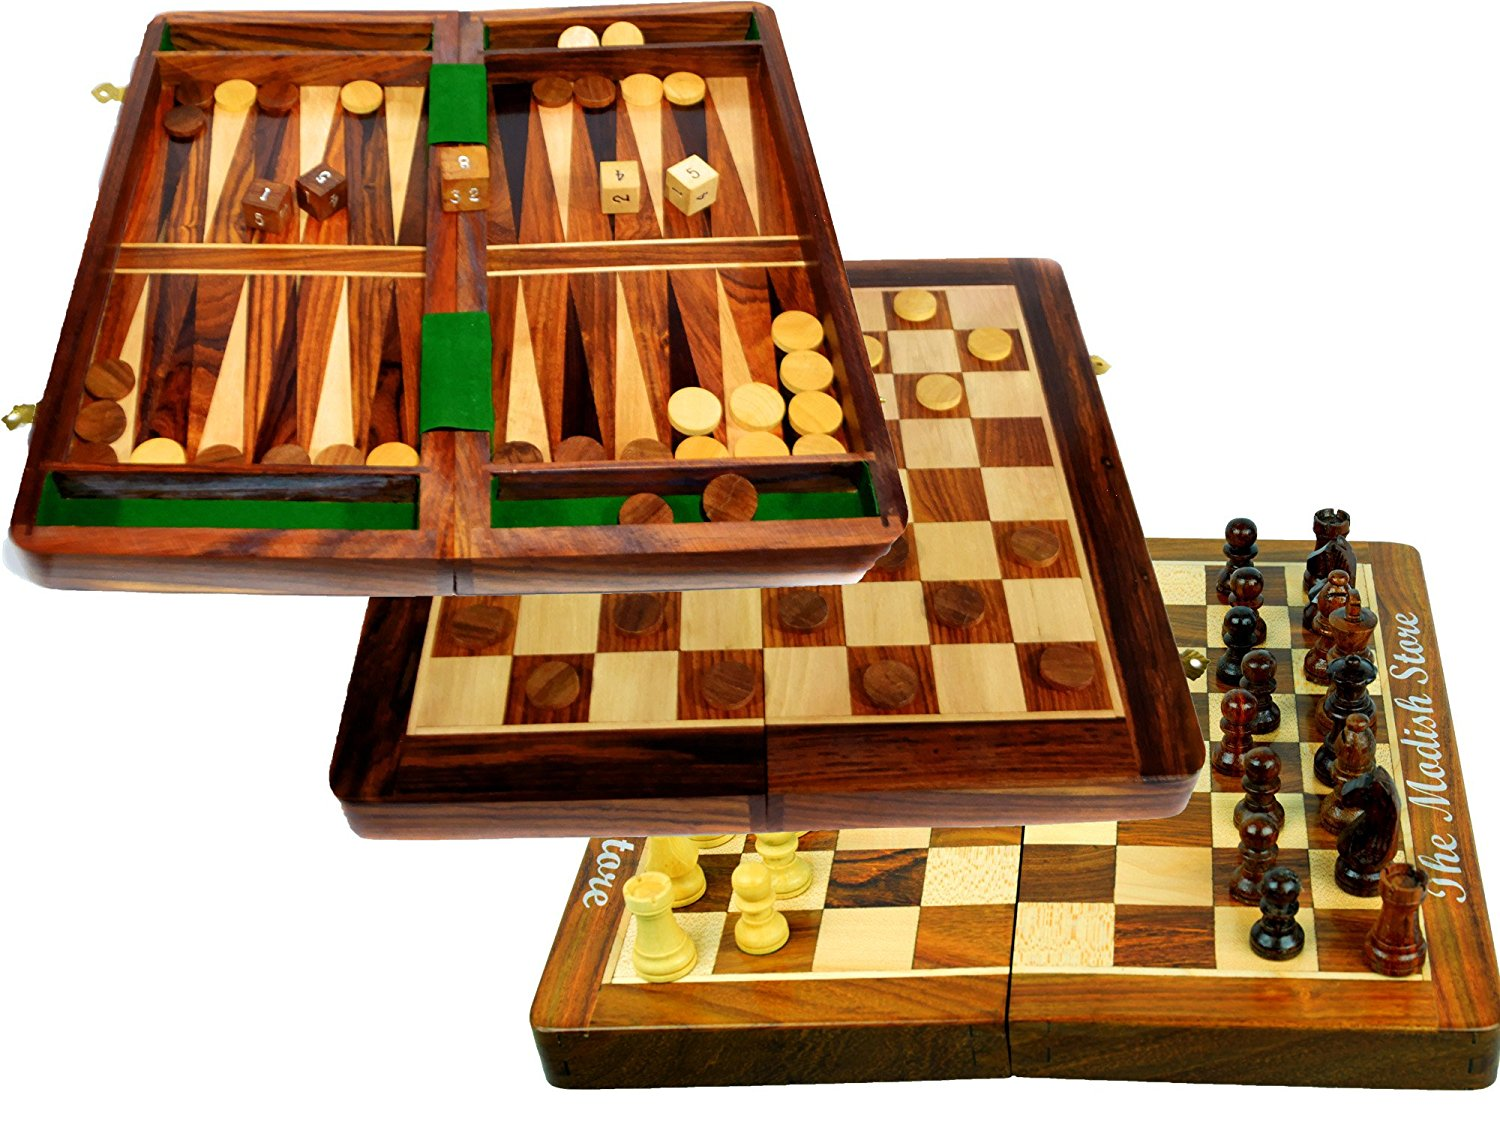 Magnetic-3-in-1-Wooden-Game-Set-Chess-Checkers-Backgammon-The-Modish-Store-01